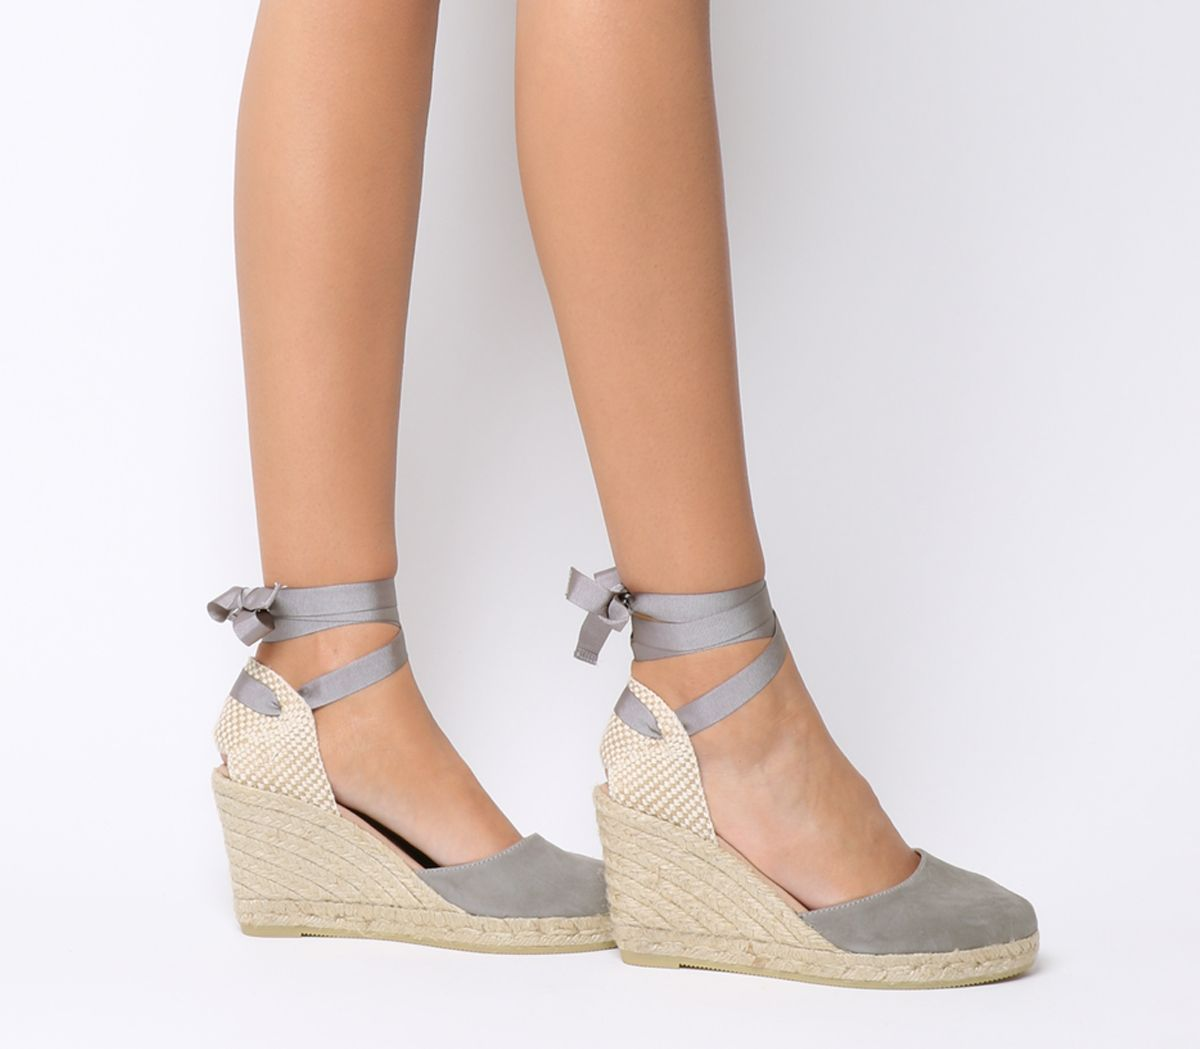 09446d148950 Gaimo for OFFICE Ankle Wrap Espadrille Wedges Grey - Hers Exclusives